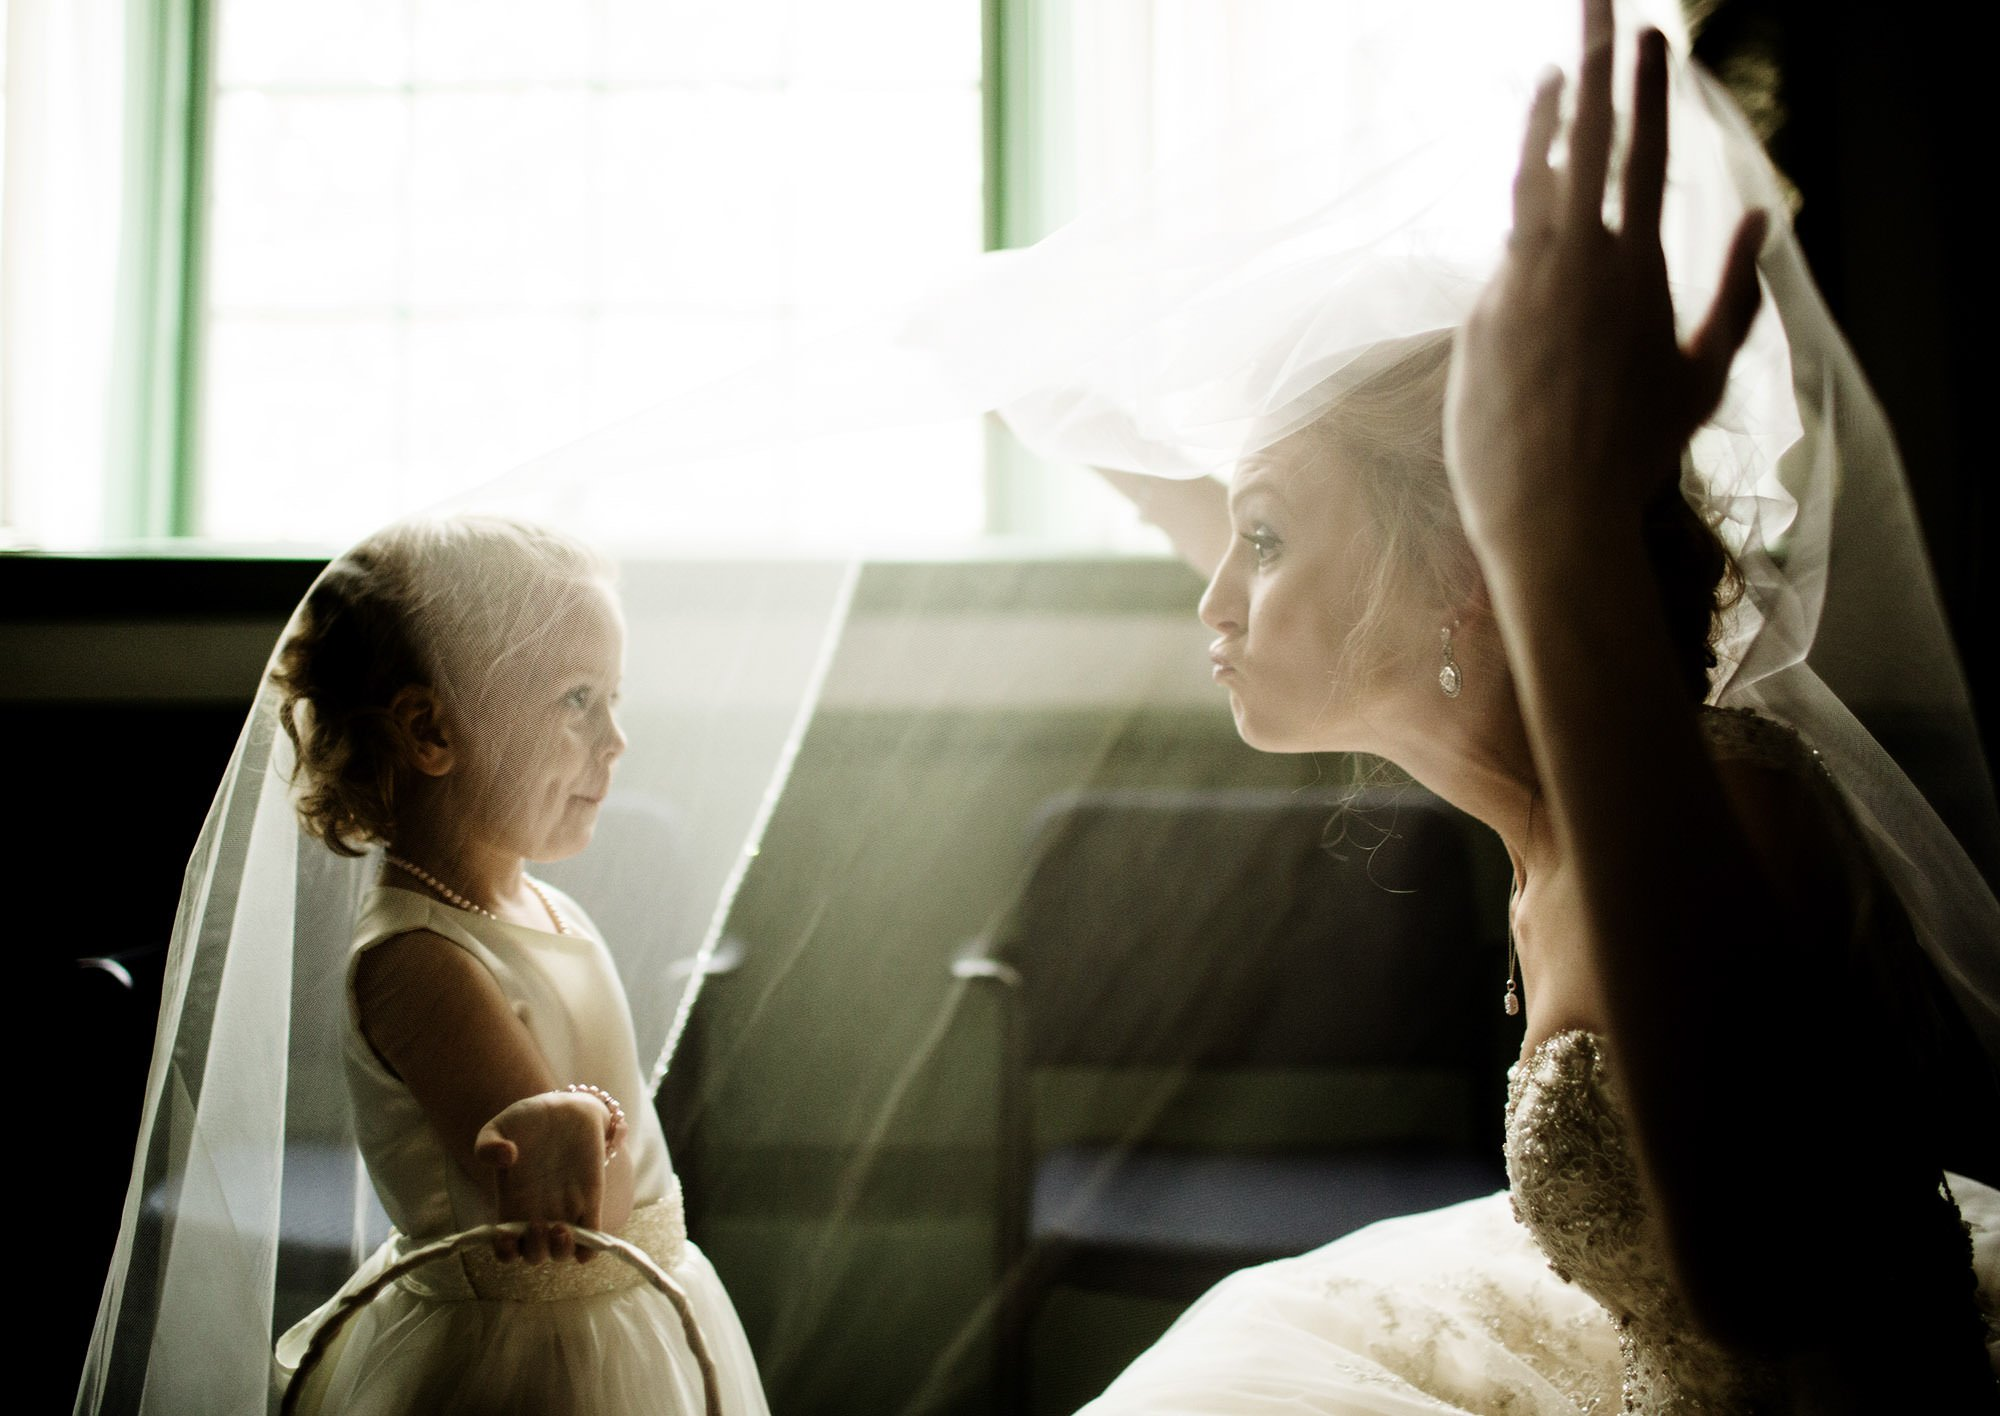 The bride shares a silly moment with her Flower Girl.